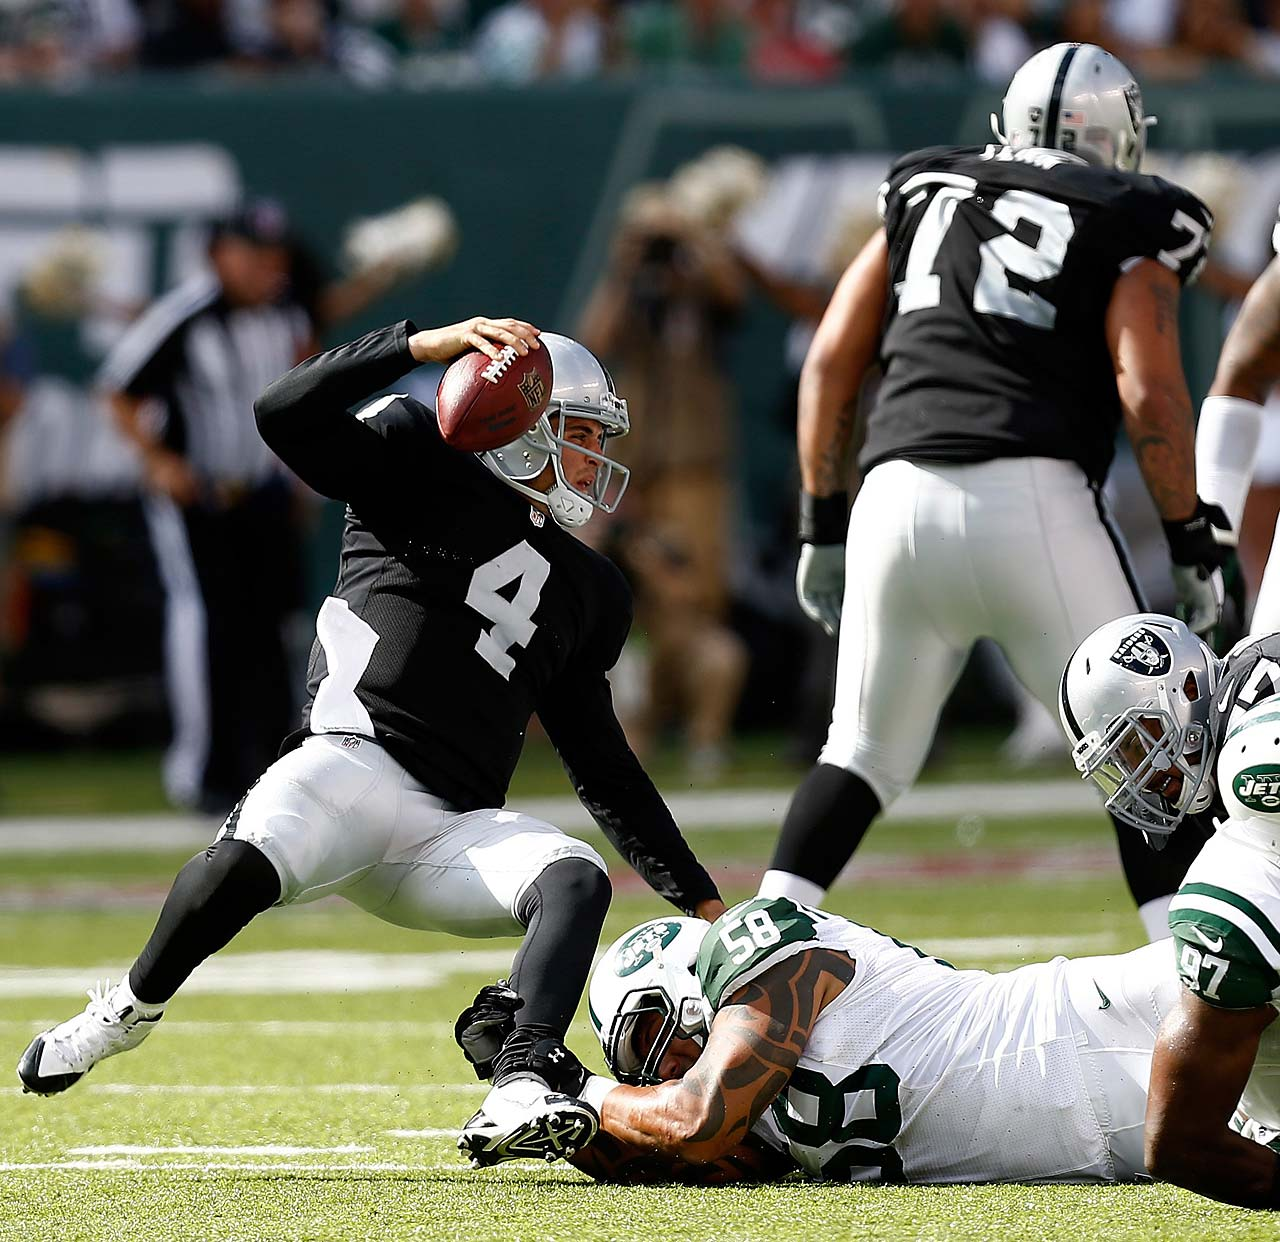 Derek Carr completed 20 of 32 passes for 151 yards and two touchdowns in a losing effort against the Jets.